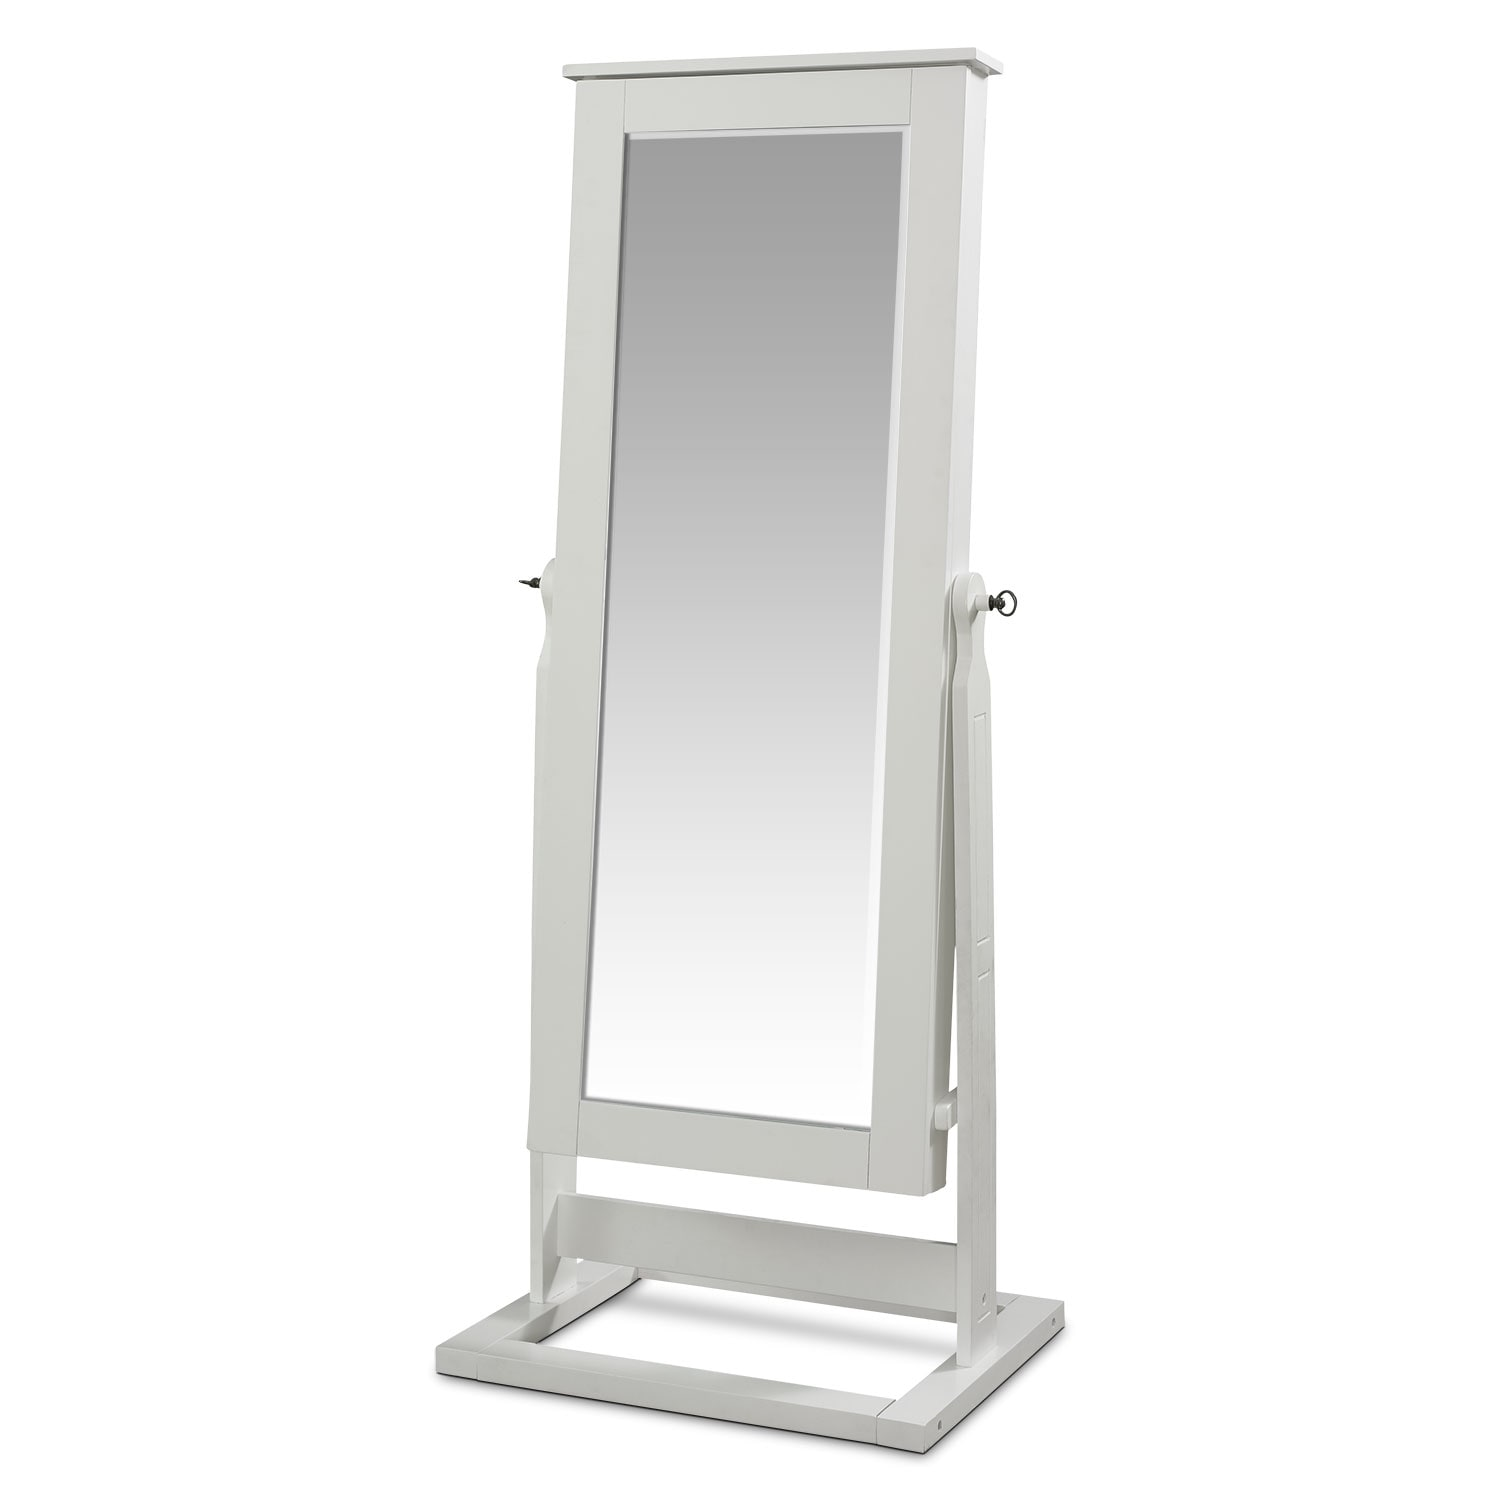 Bedroom Furniture - Perrie Cheval Storage Mirror - White